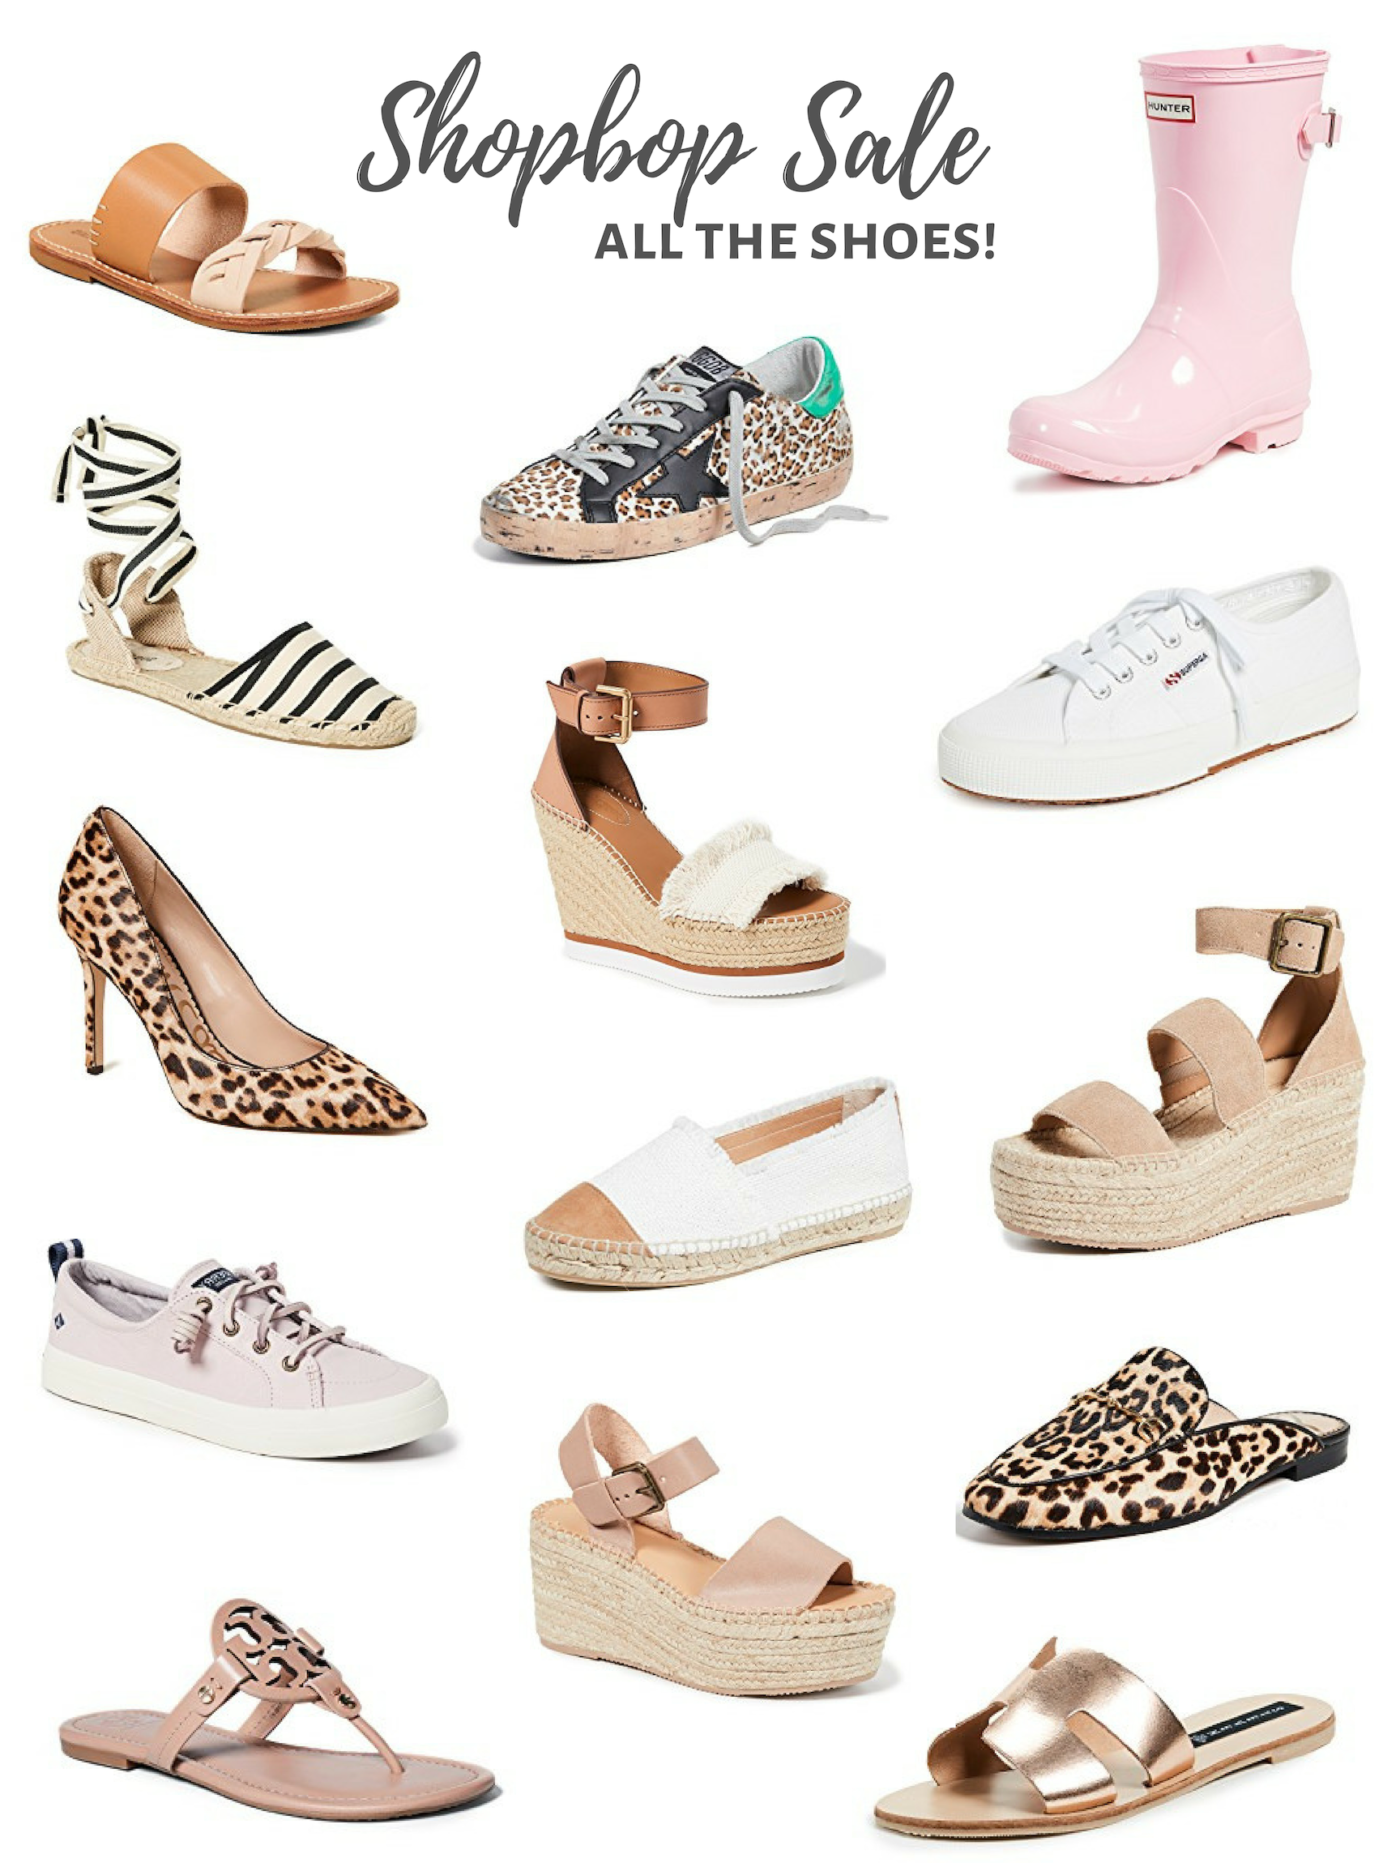 Shopbop Sale - All the Best Shoes & Bags